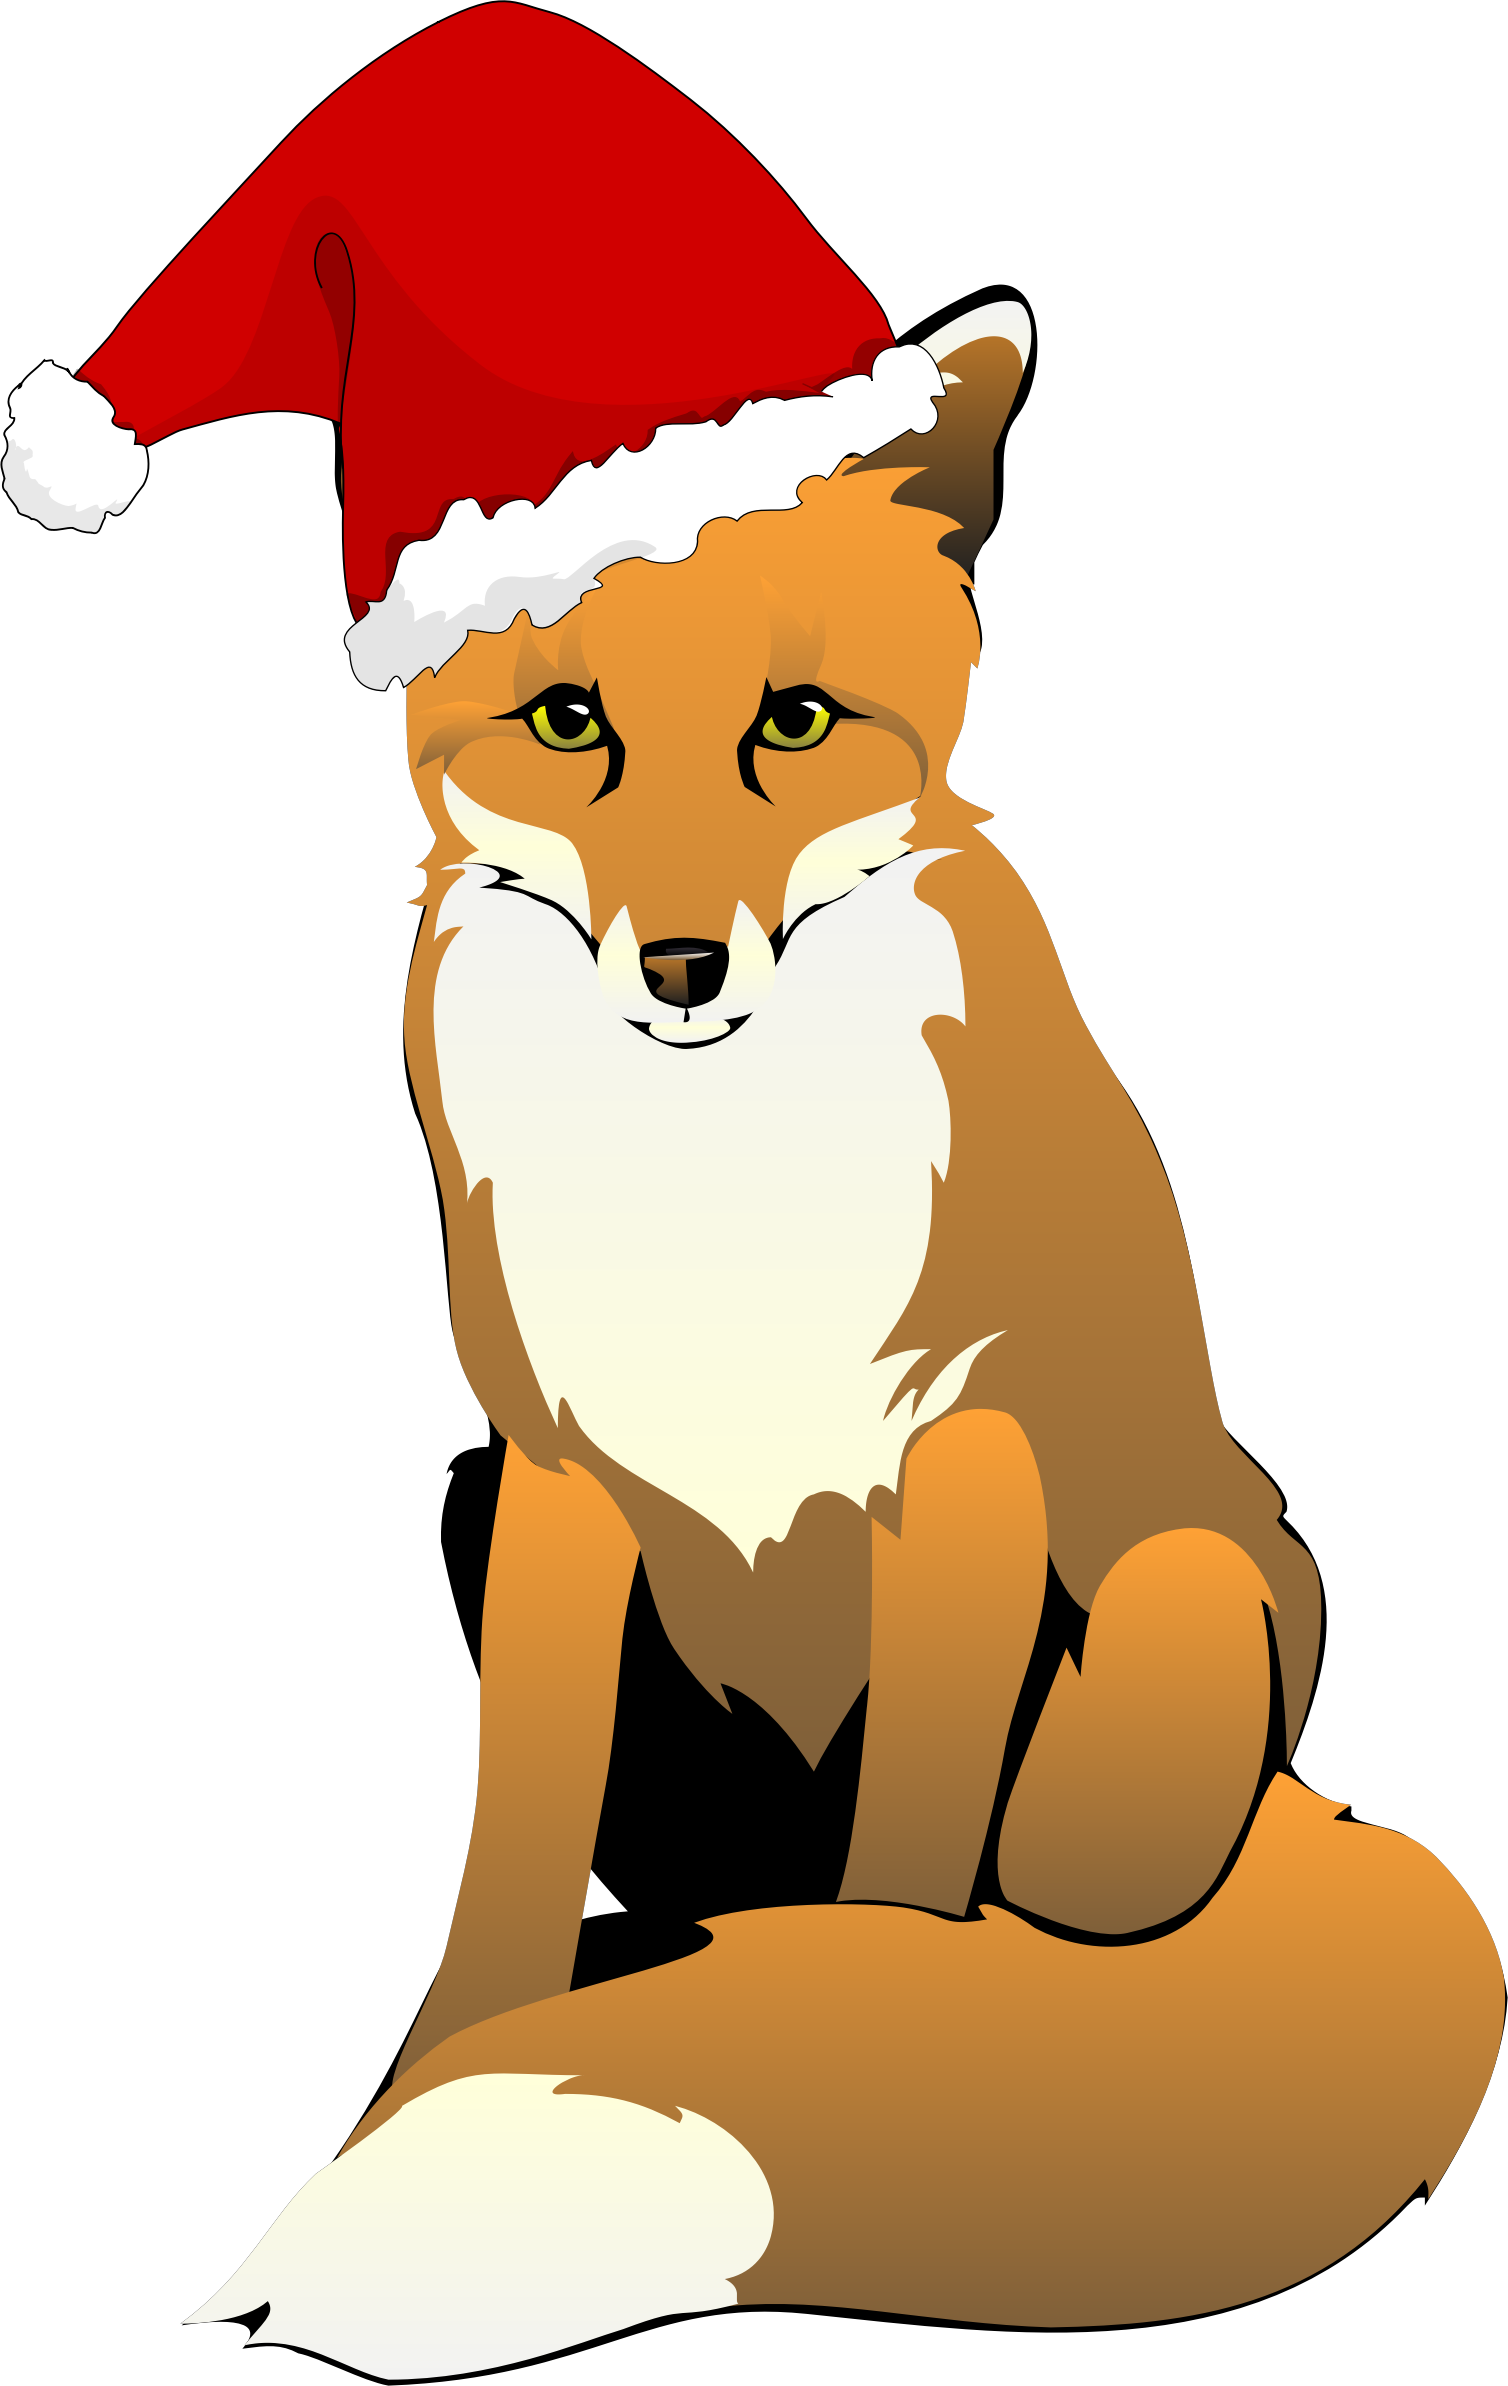 Fox Wearing Santa Hat by GDJ